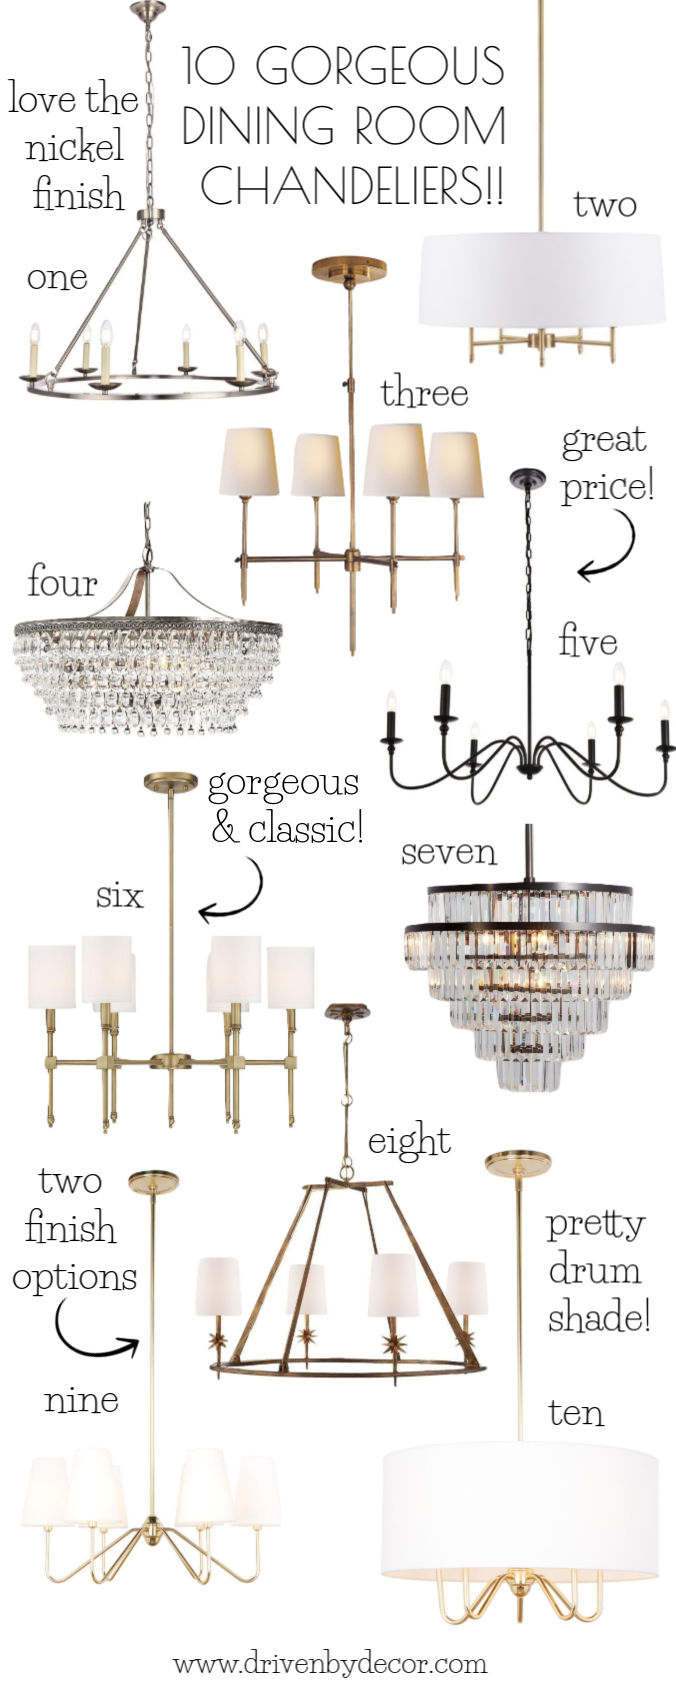 Such gorgeous dining room chandeliers! Links and sources for all ten are in the post!